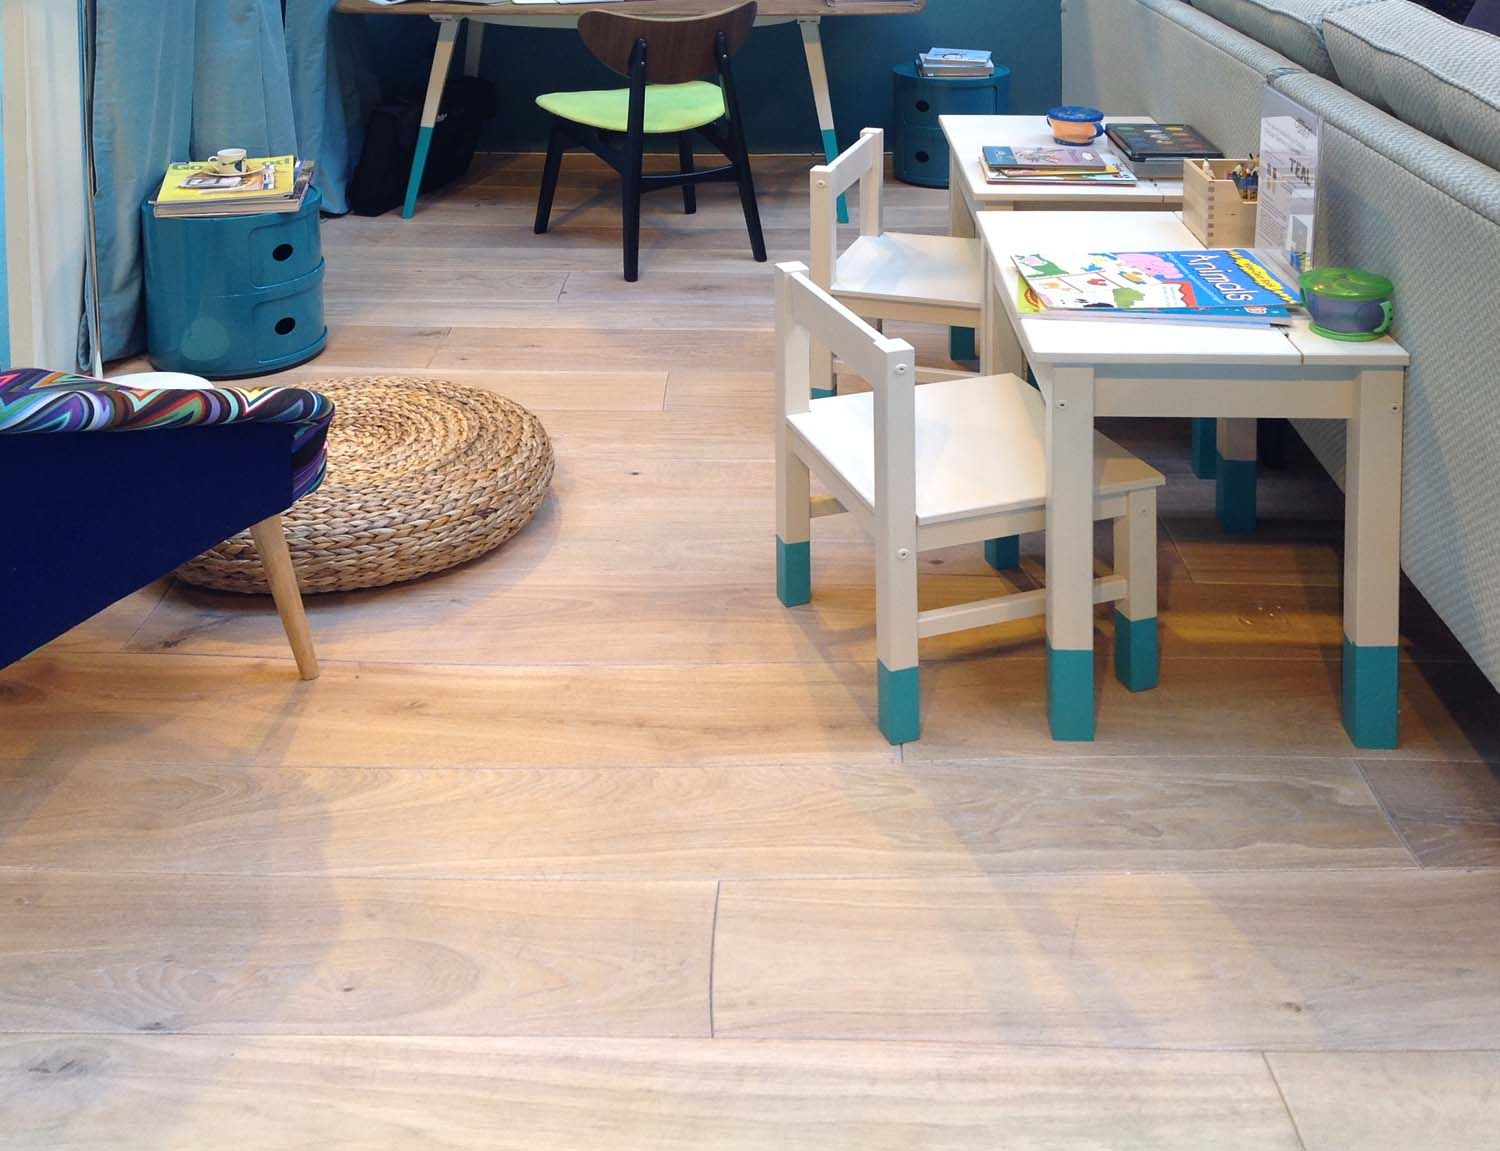 Bole's Curv8 Modular Wooden Floorboards In Kids Playroom